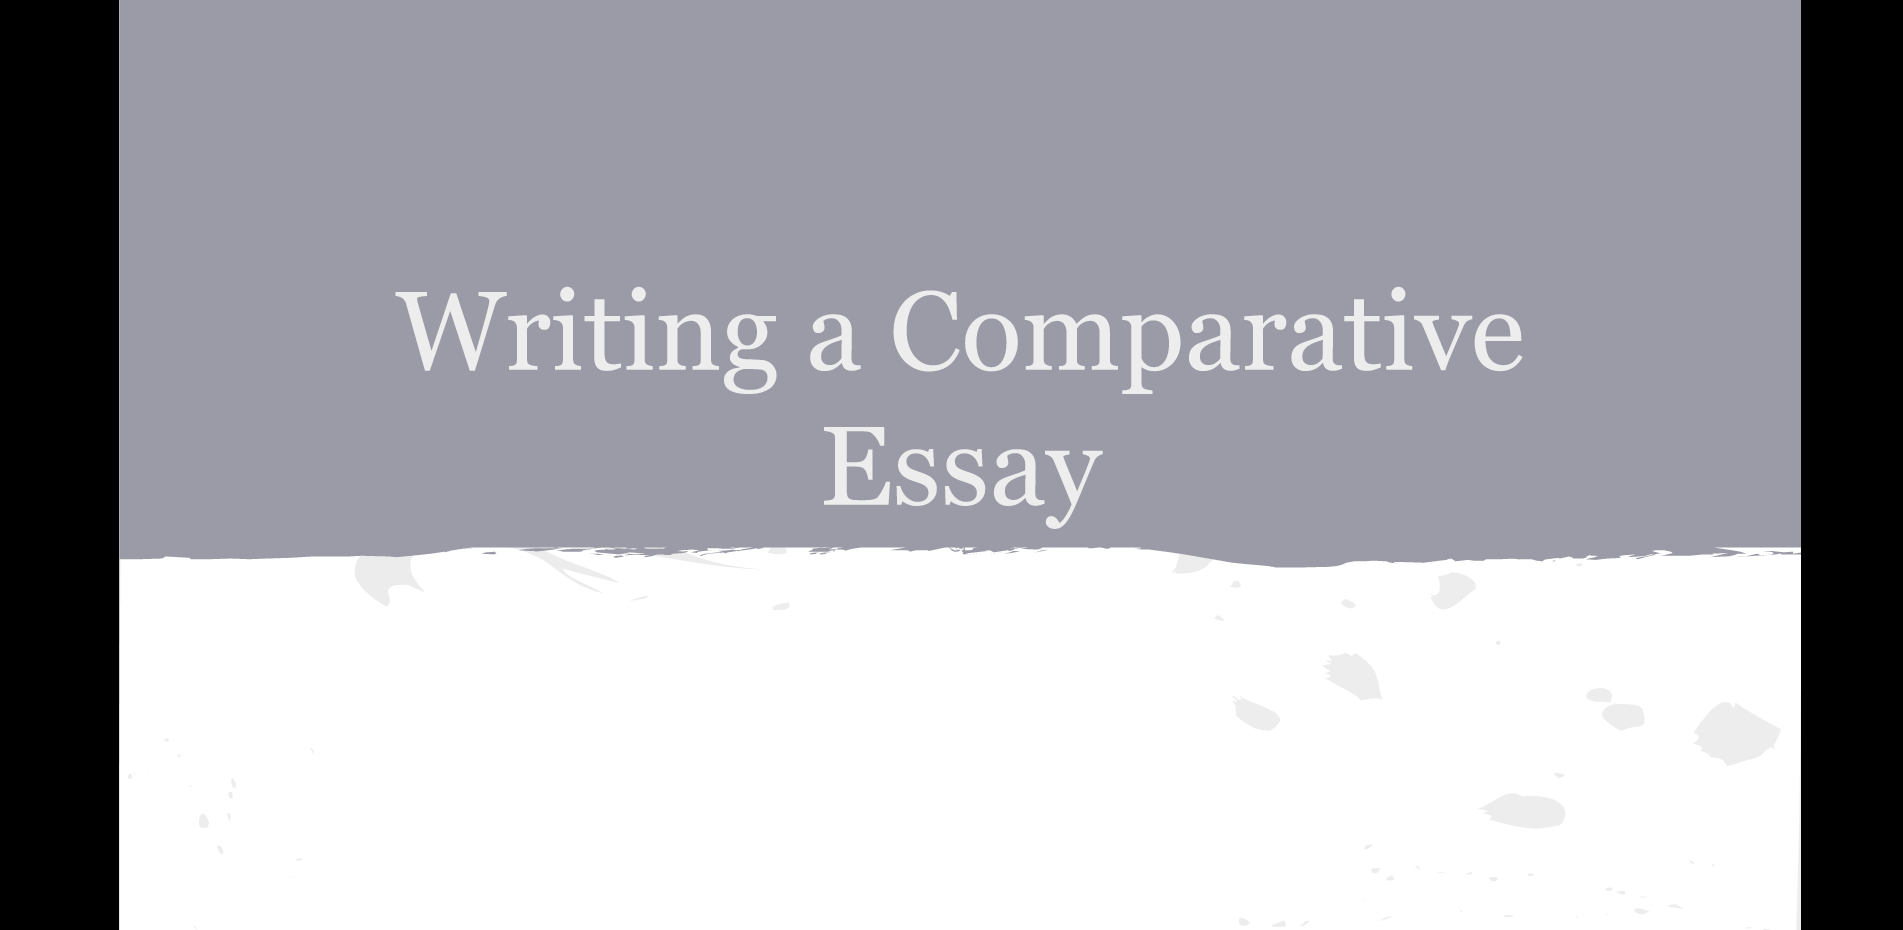 compare and contrast in english libguides at zurich how to write a comparative essay slide presentation click on first slide